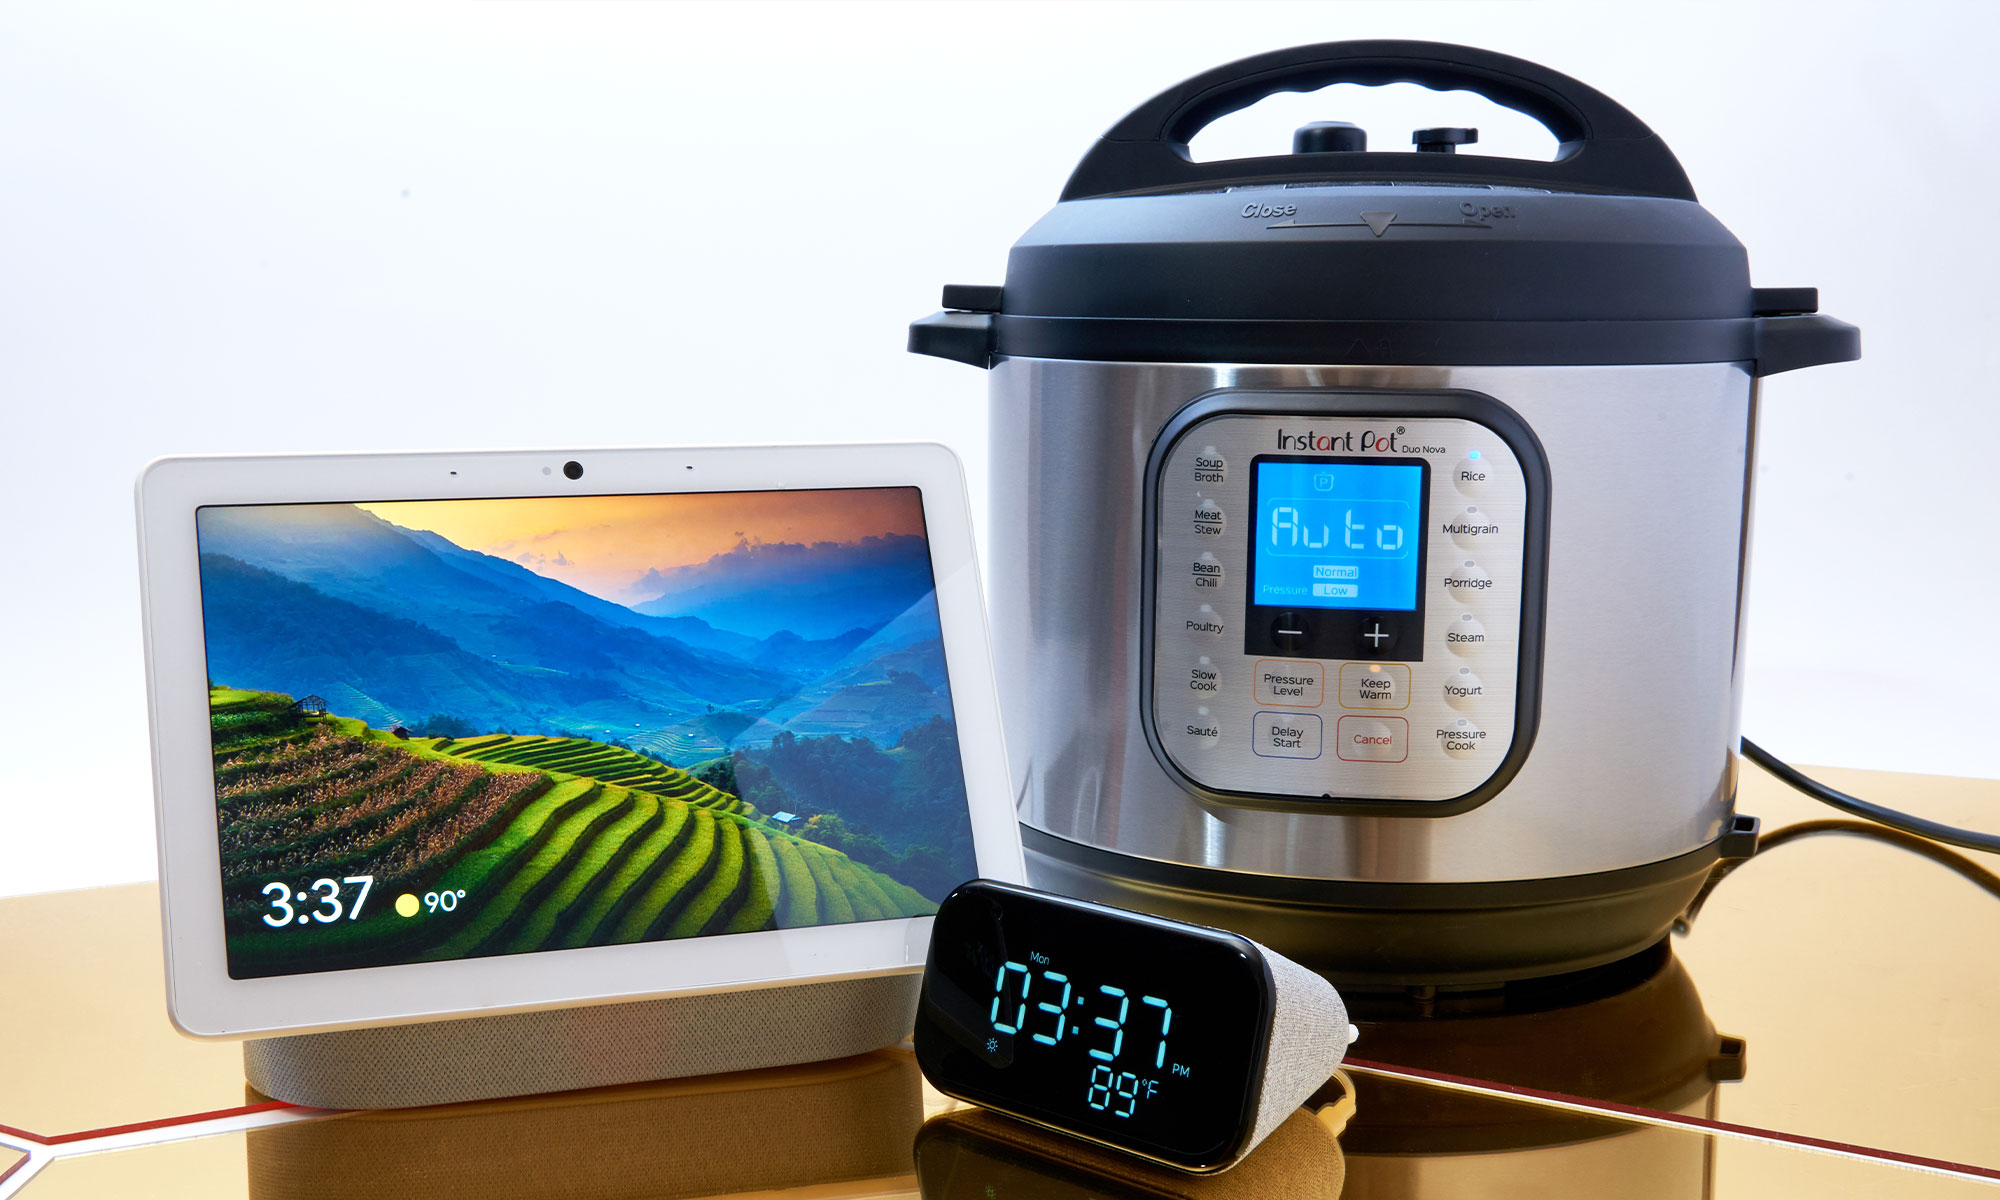 Smart home gadgets and kitchen tech that make great gifts | Engadget